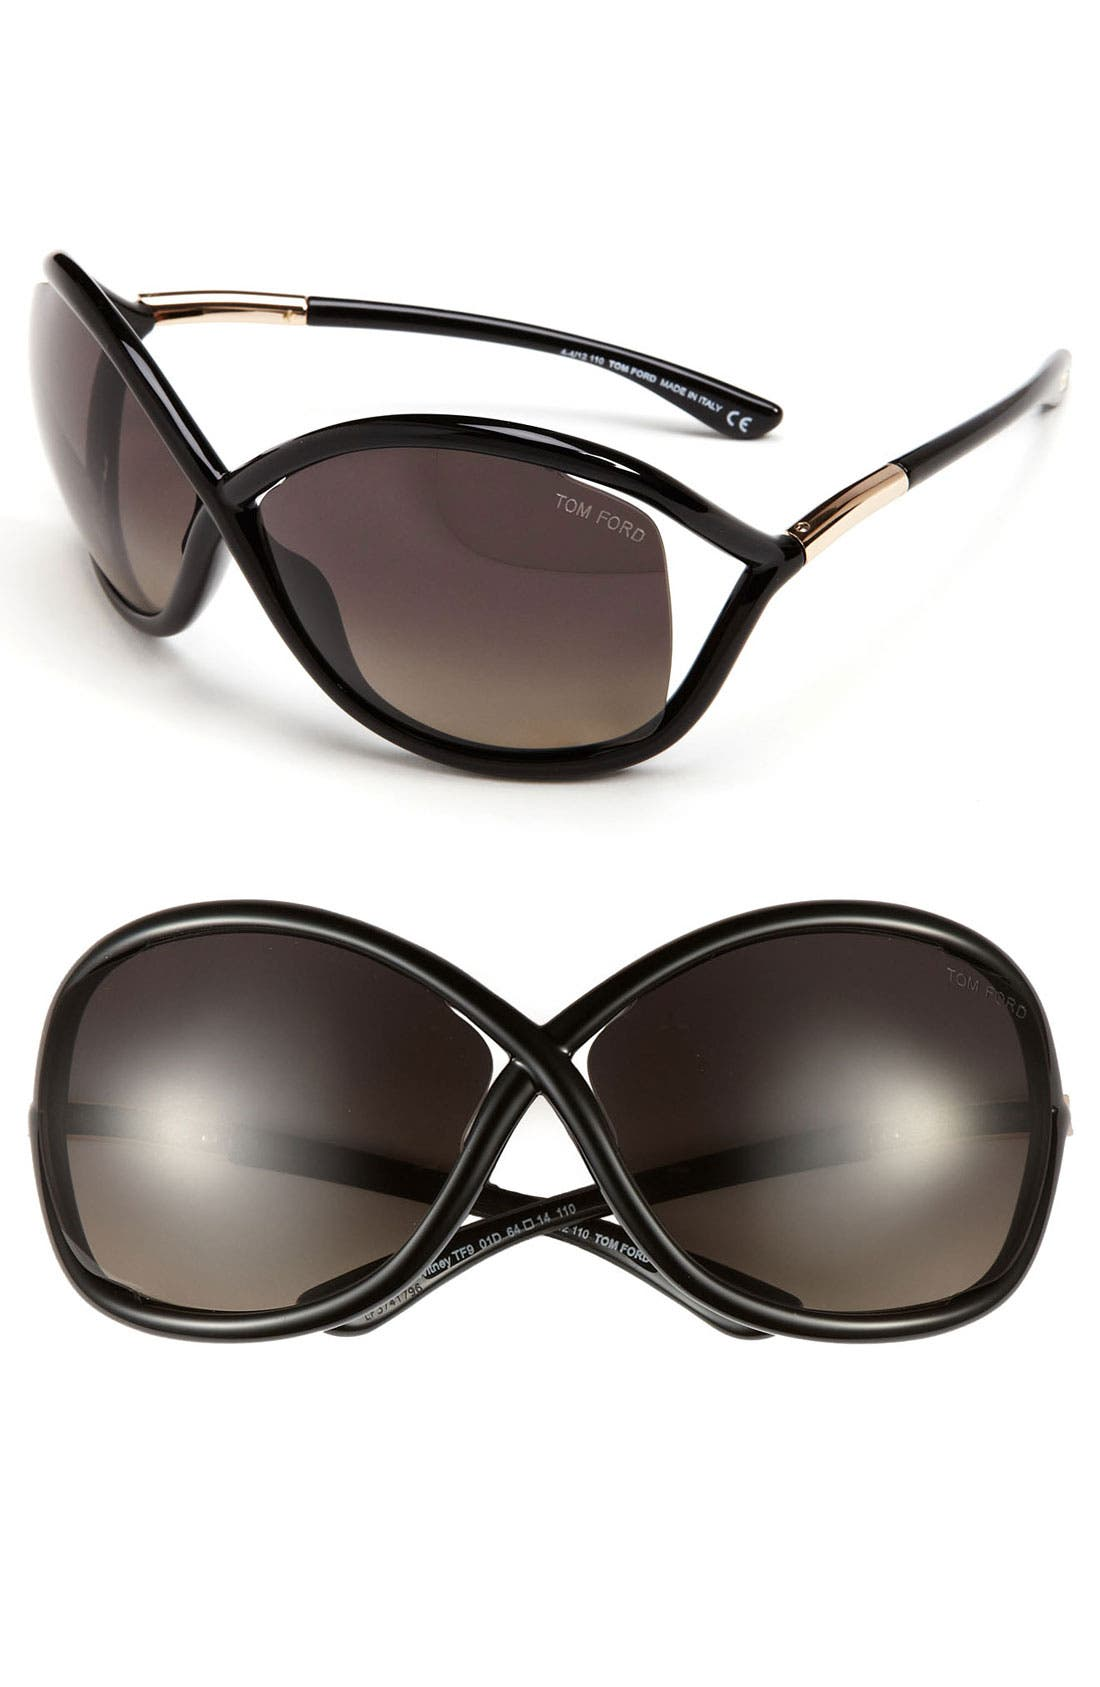 Alternate Image 1 Selected - Tom Ford 'Whitney' 64mm Polarized Sunglasses